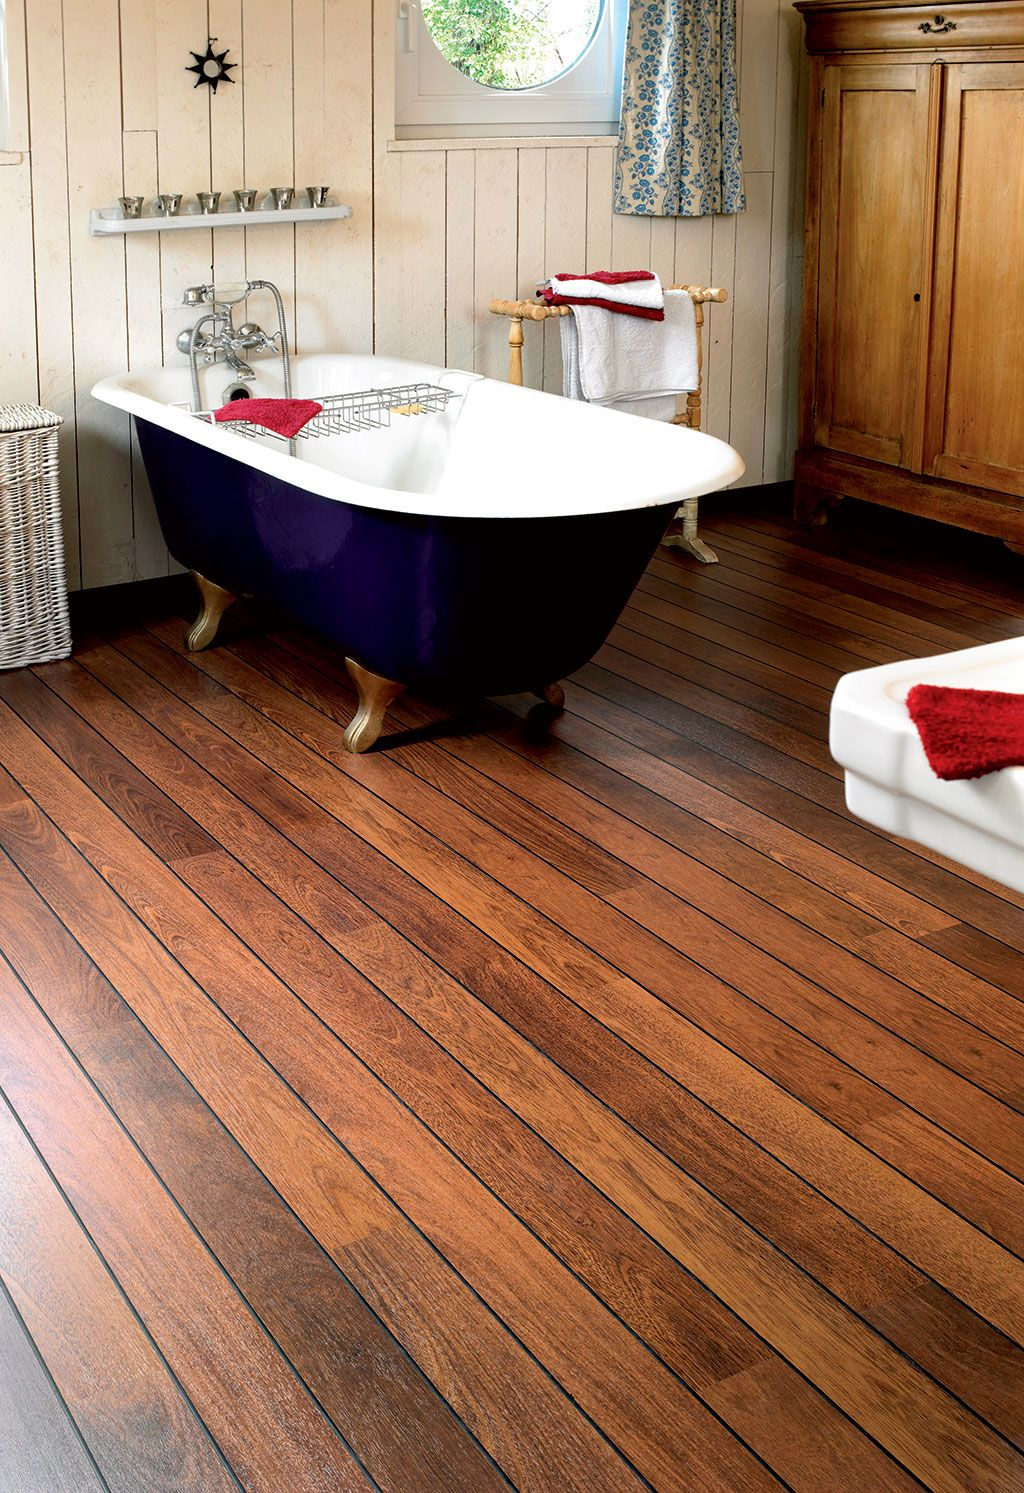 Laminate Flooring For Bathroom quick-step lagune 'merbau, shipdeck' (ur1032) laminate flooring